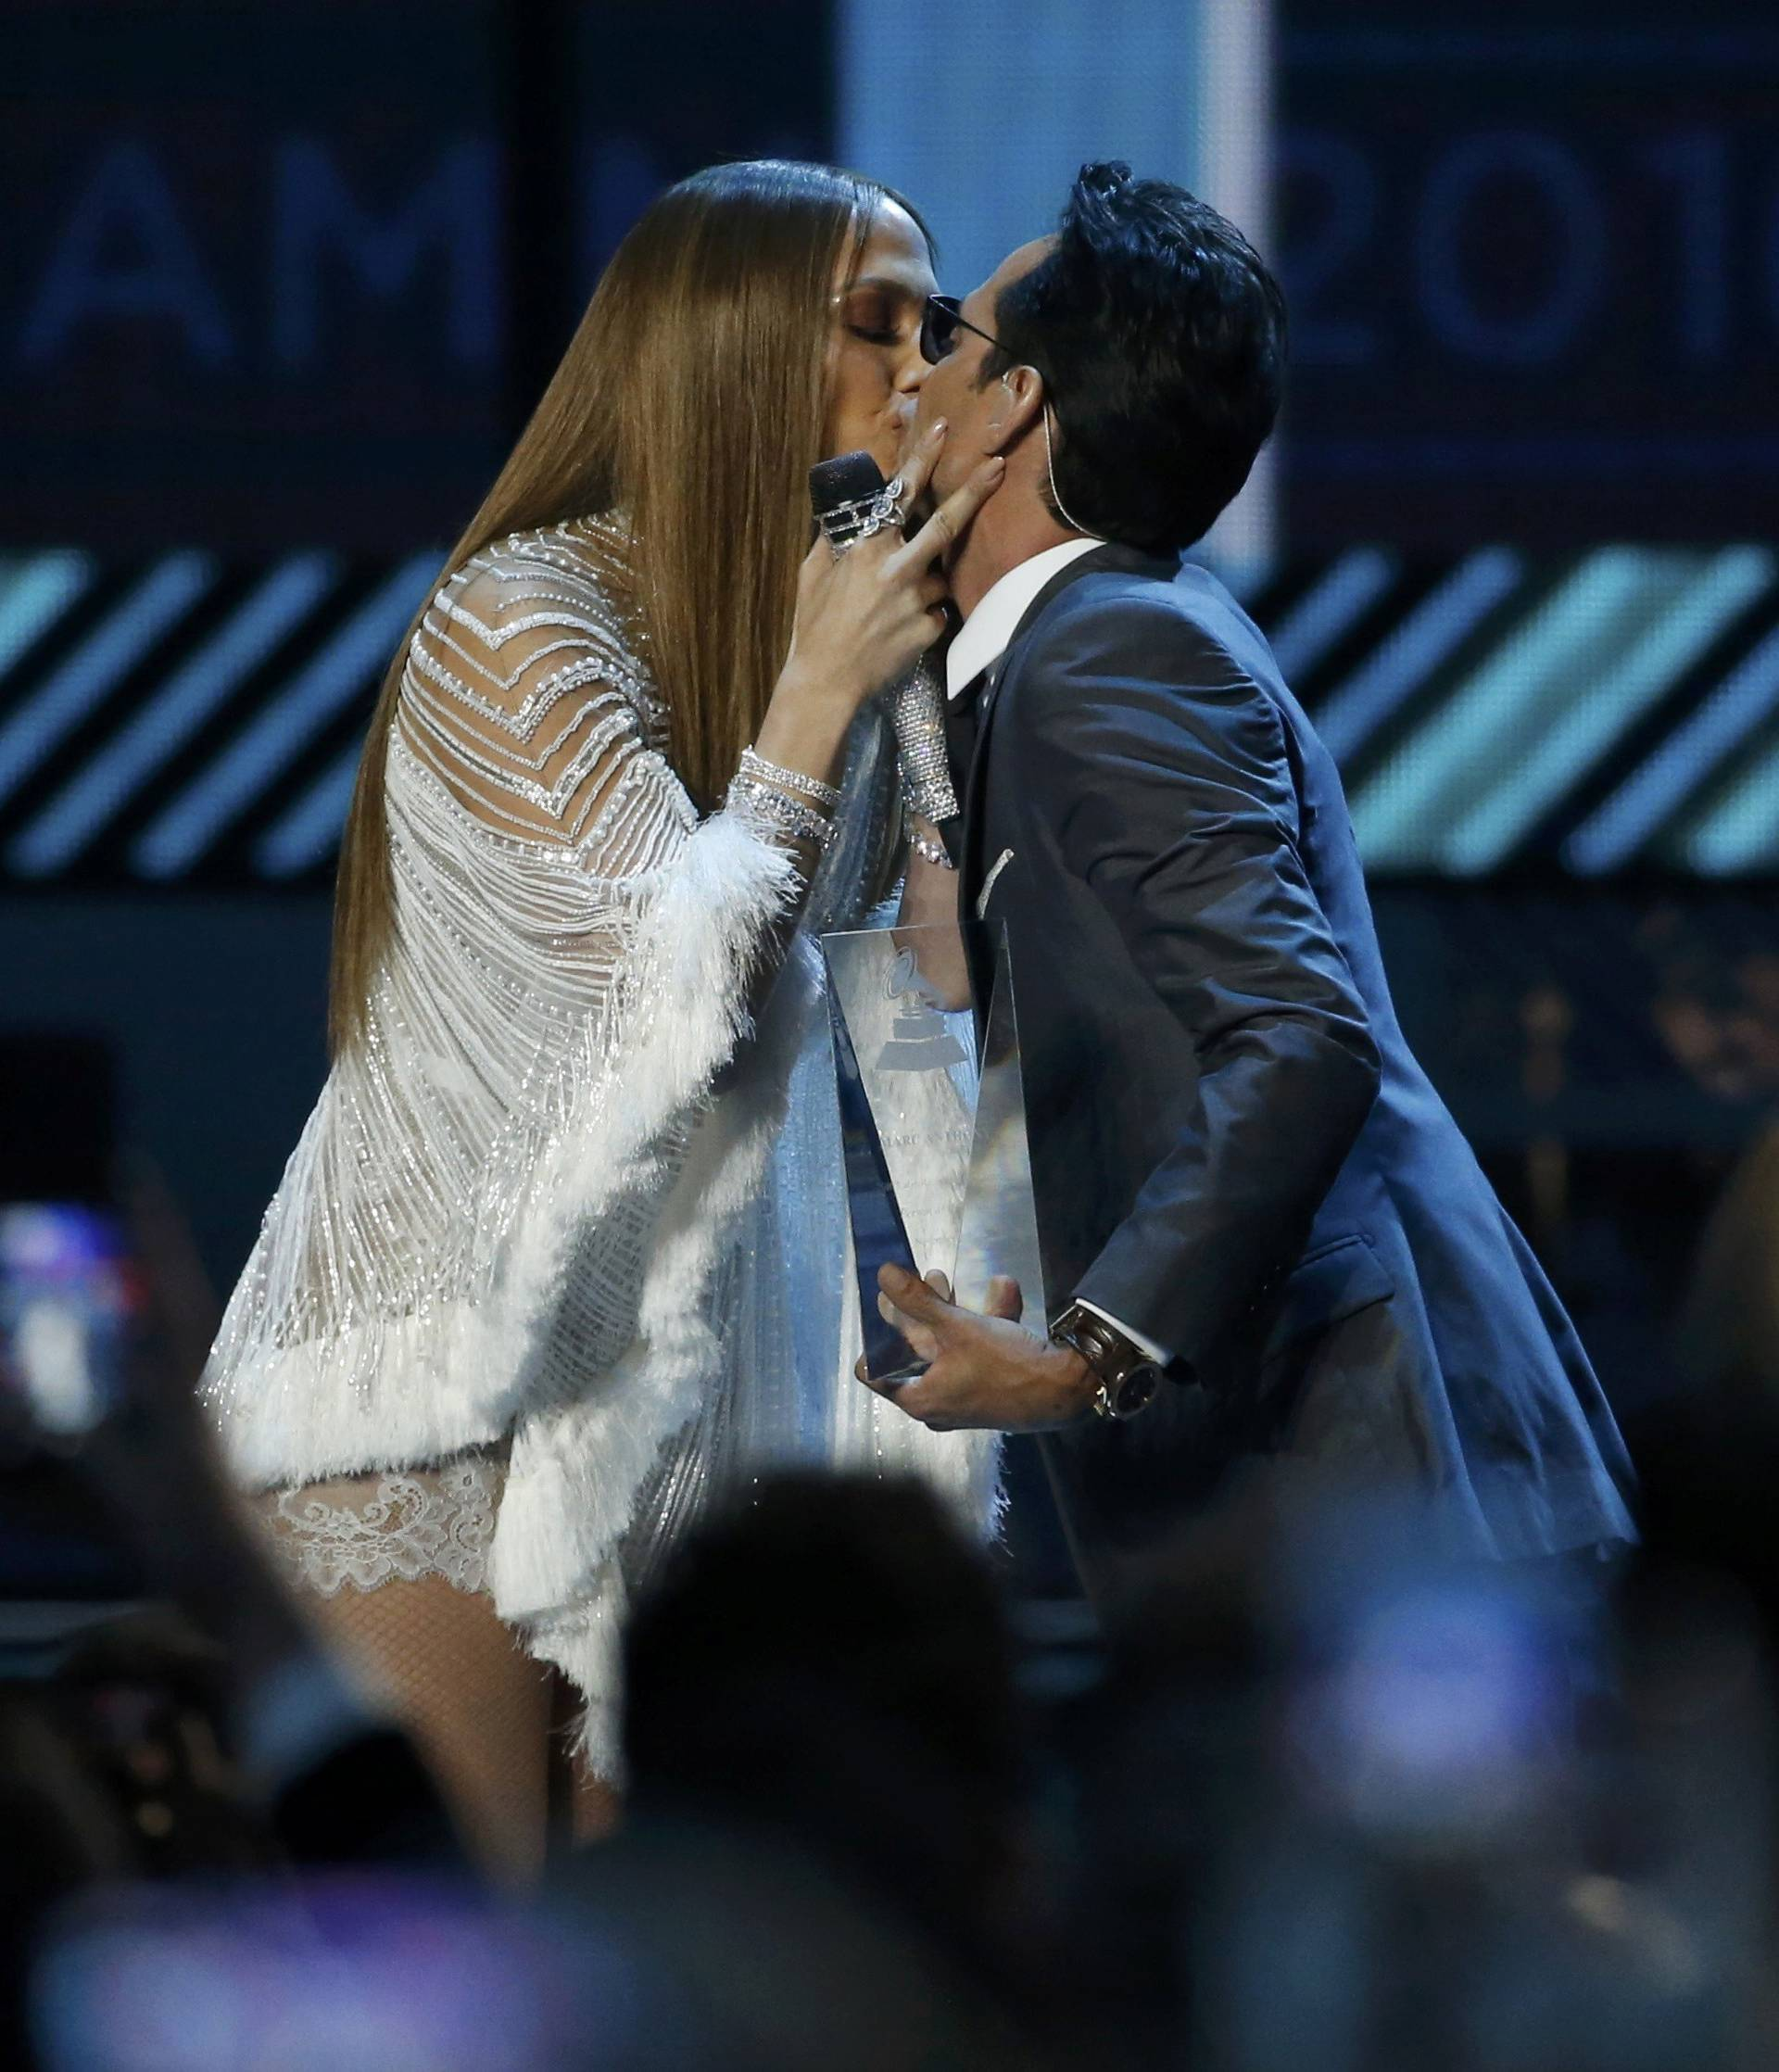 Lopez kisses Anthony after she presented him with award honoring him as Latin Recording Academy person of the year at the 17th Annual Latin Grammy Awards in Las Vegas